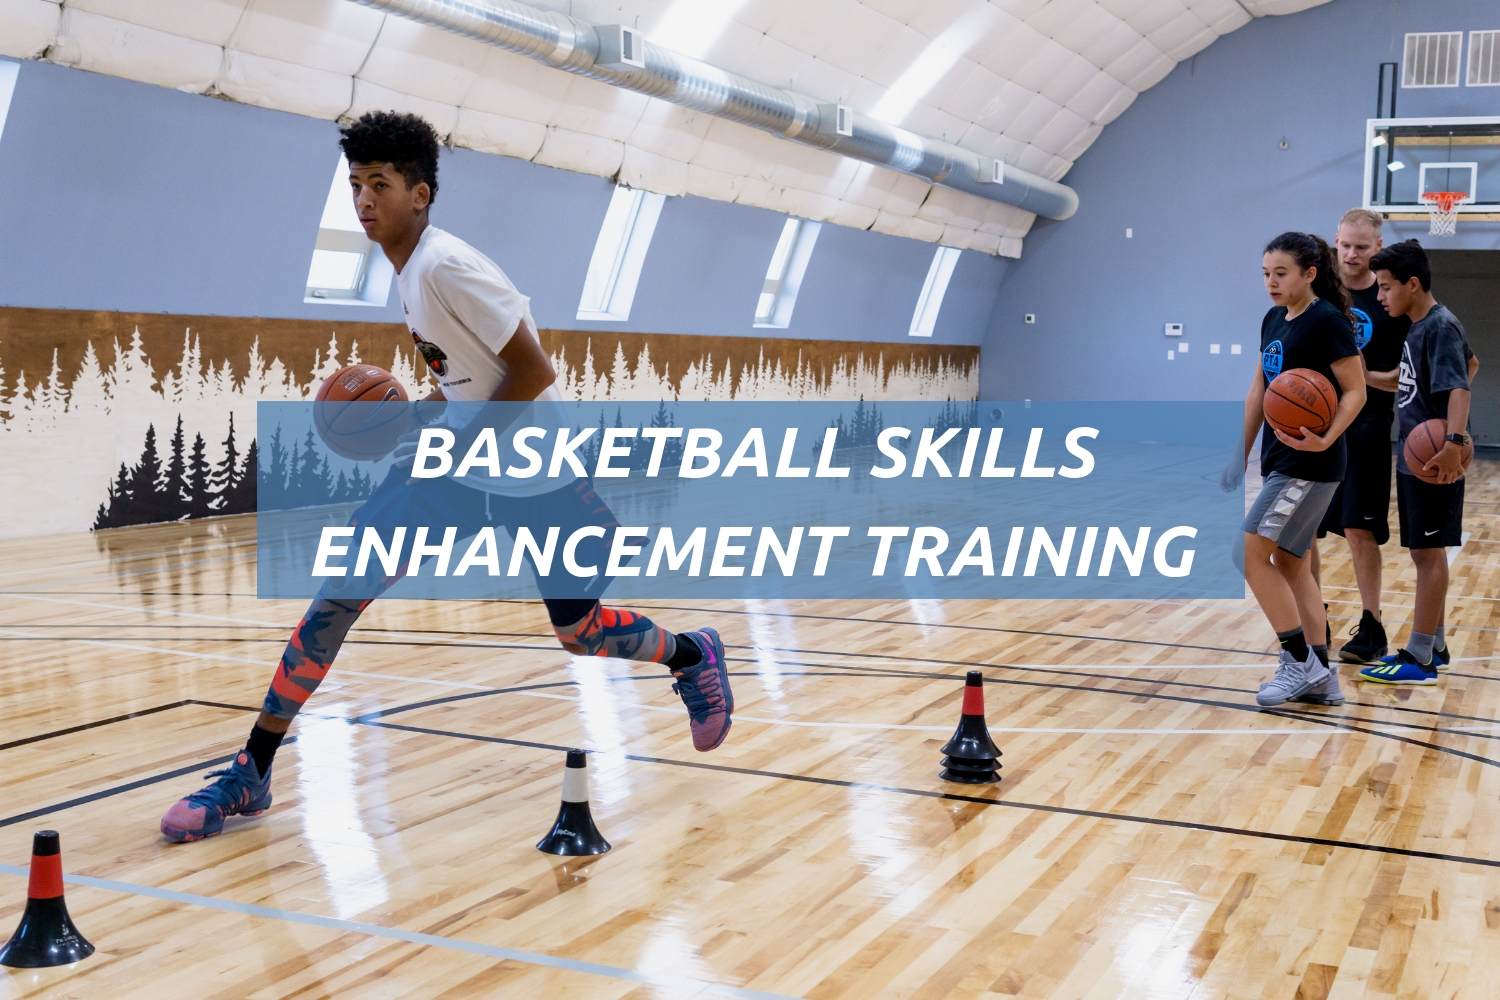 Basketball Skills Enhancement Training - Homepage Graphic.jpg